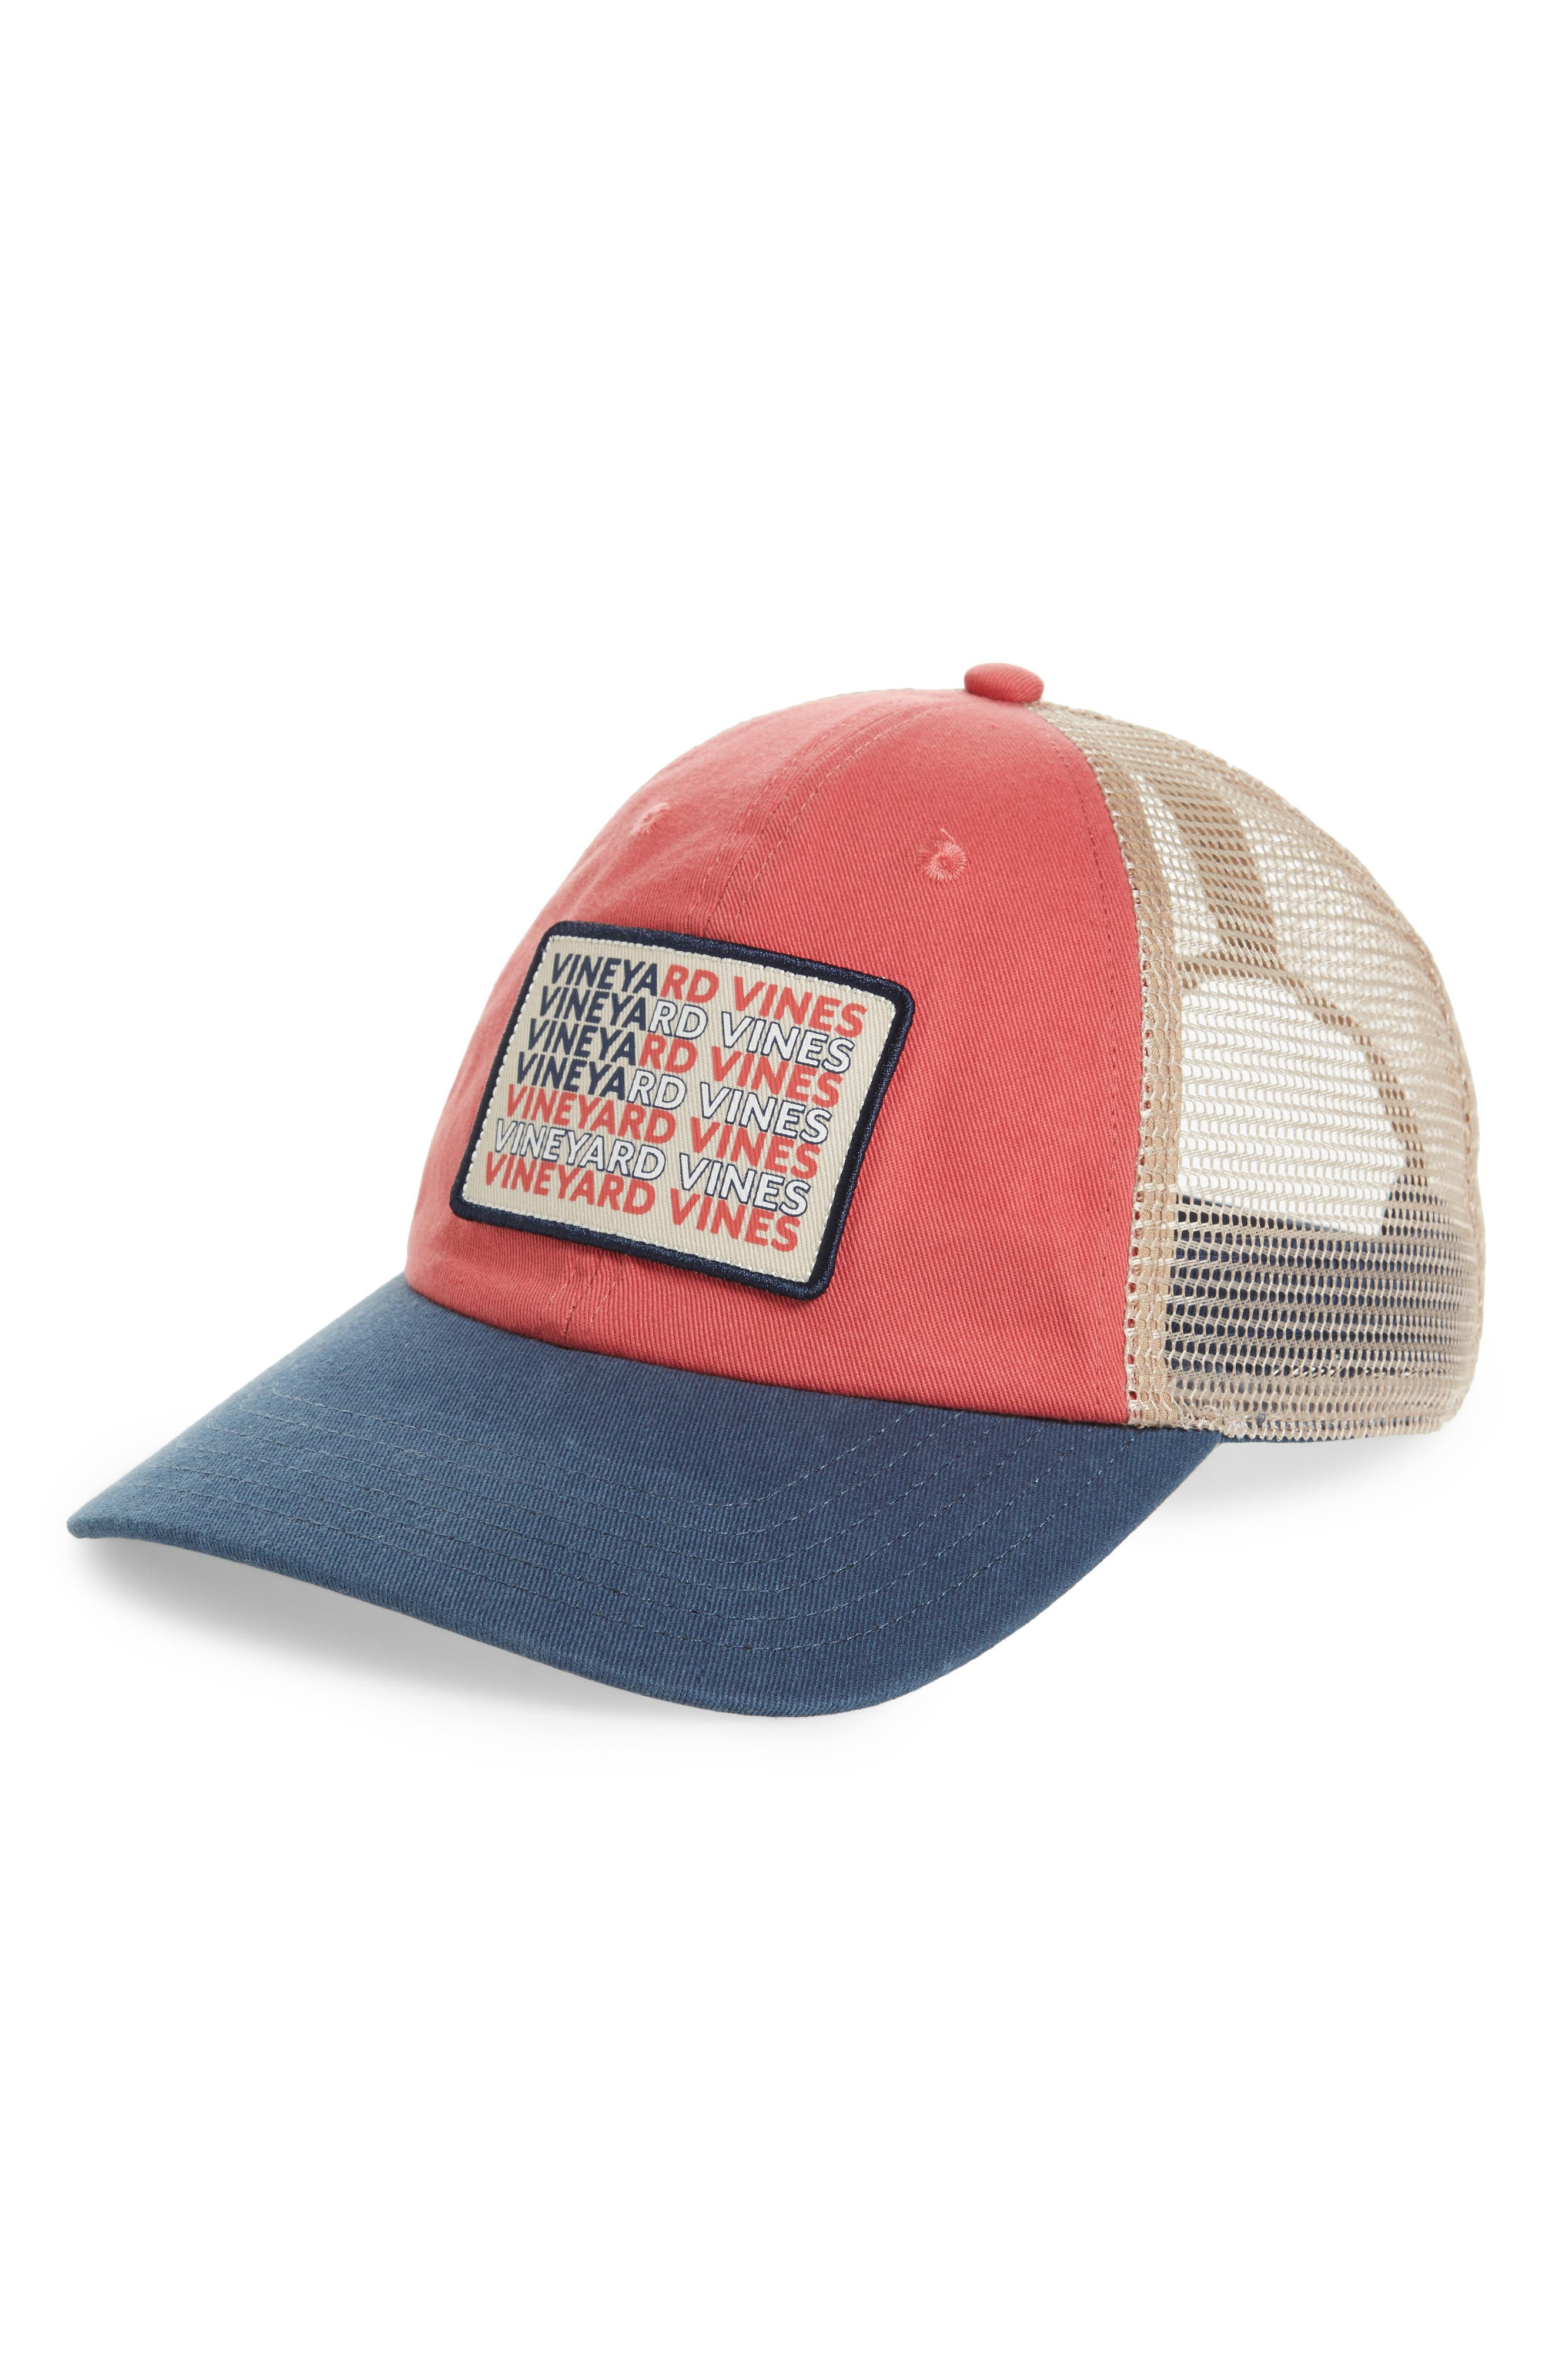 vineyard vines Flag Whale Patch Trucker Cap